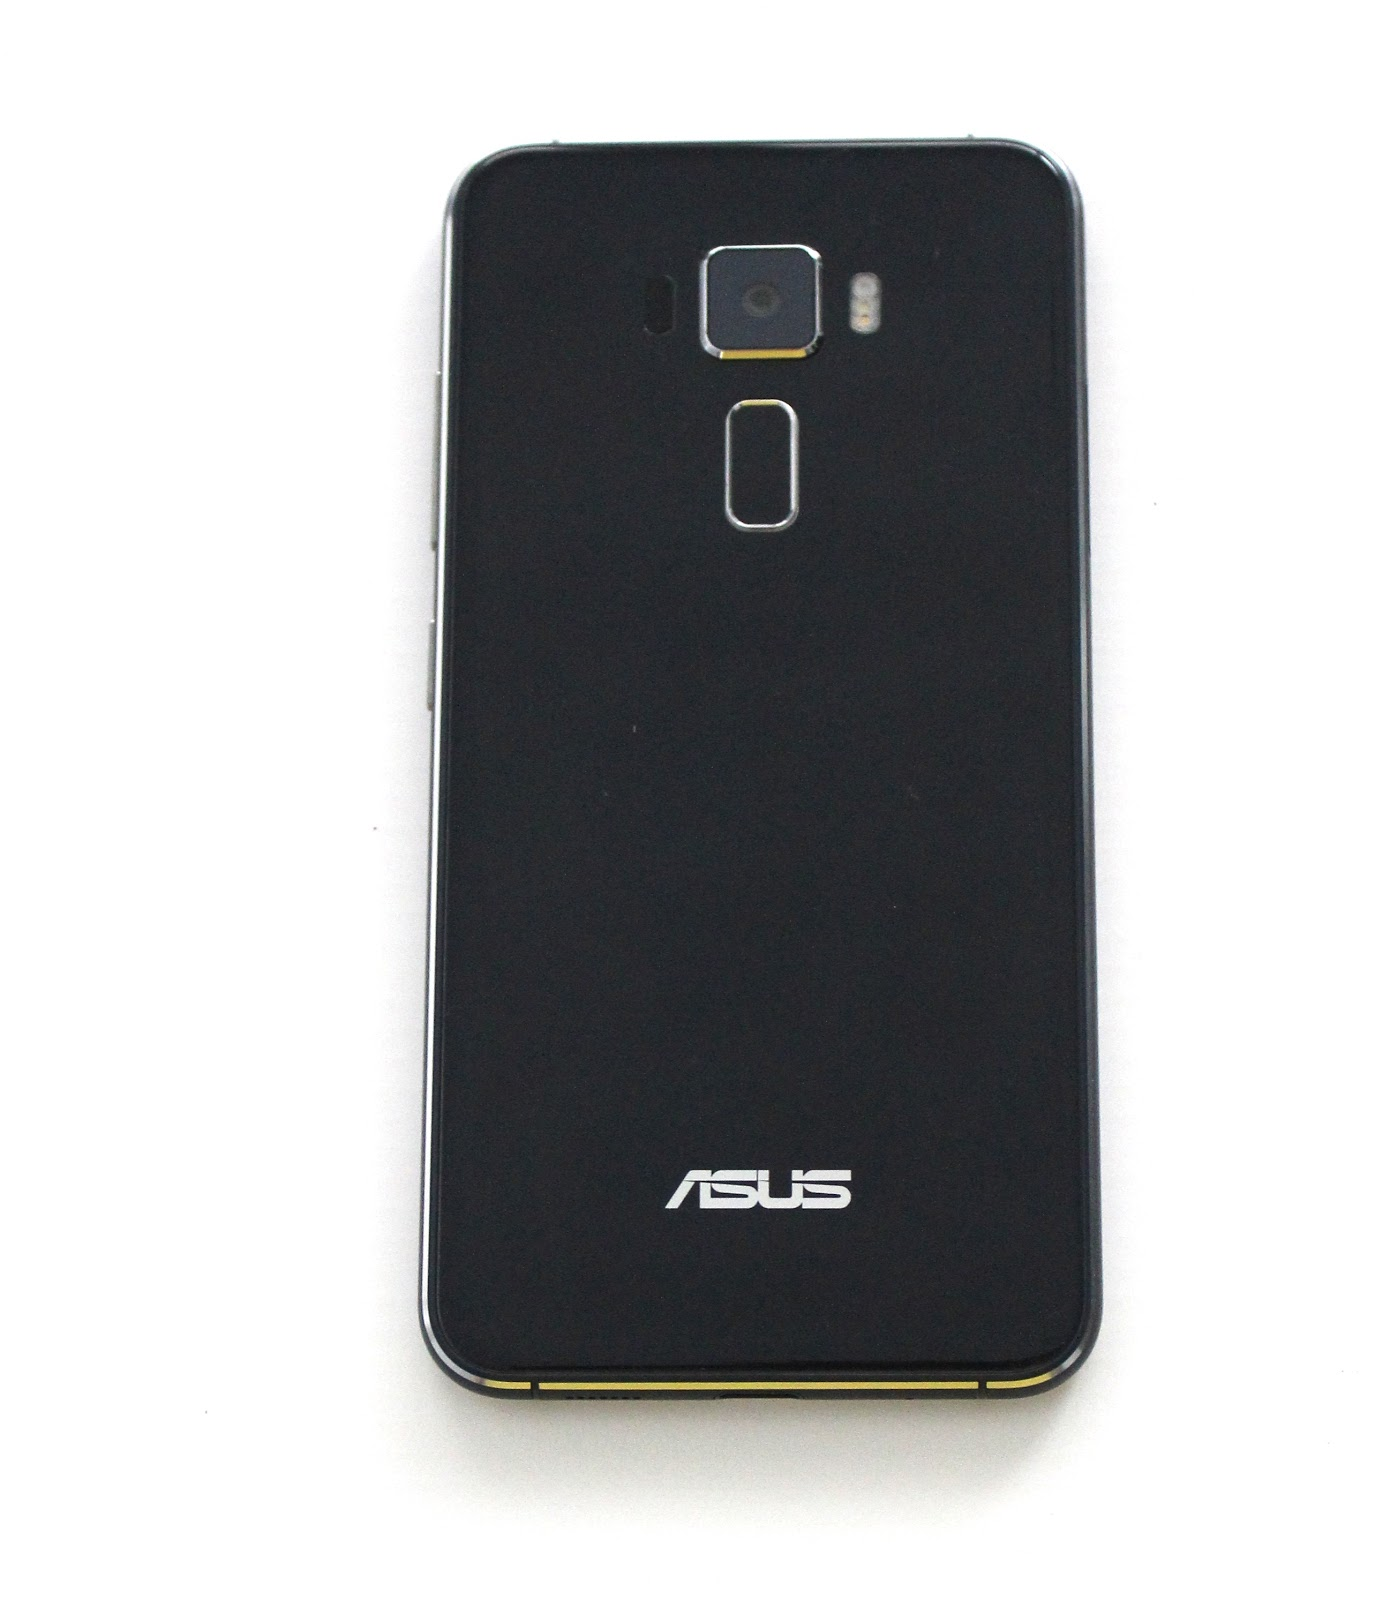 Unboxing Asus ZenFone 3 Hands On And Full Review